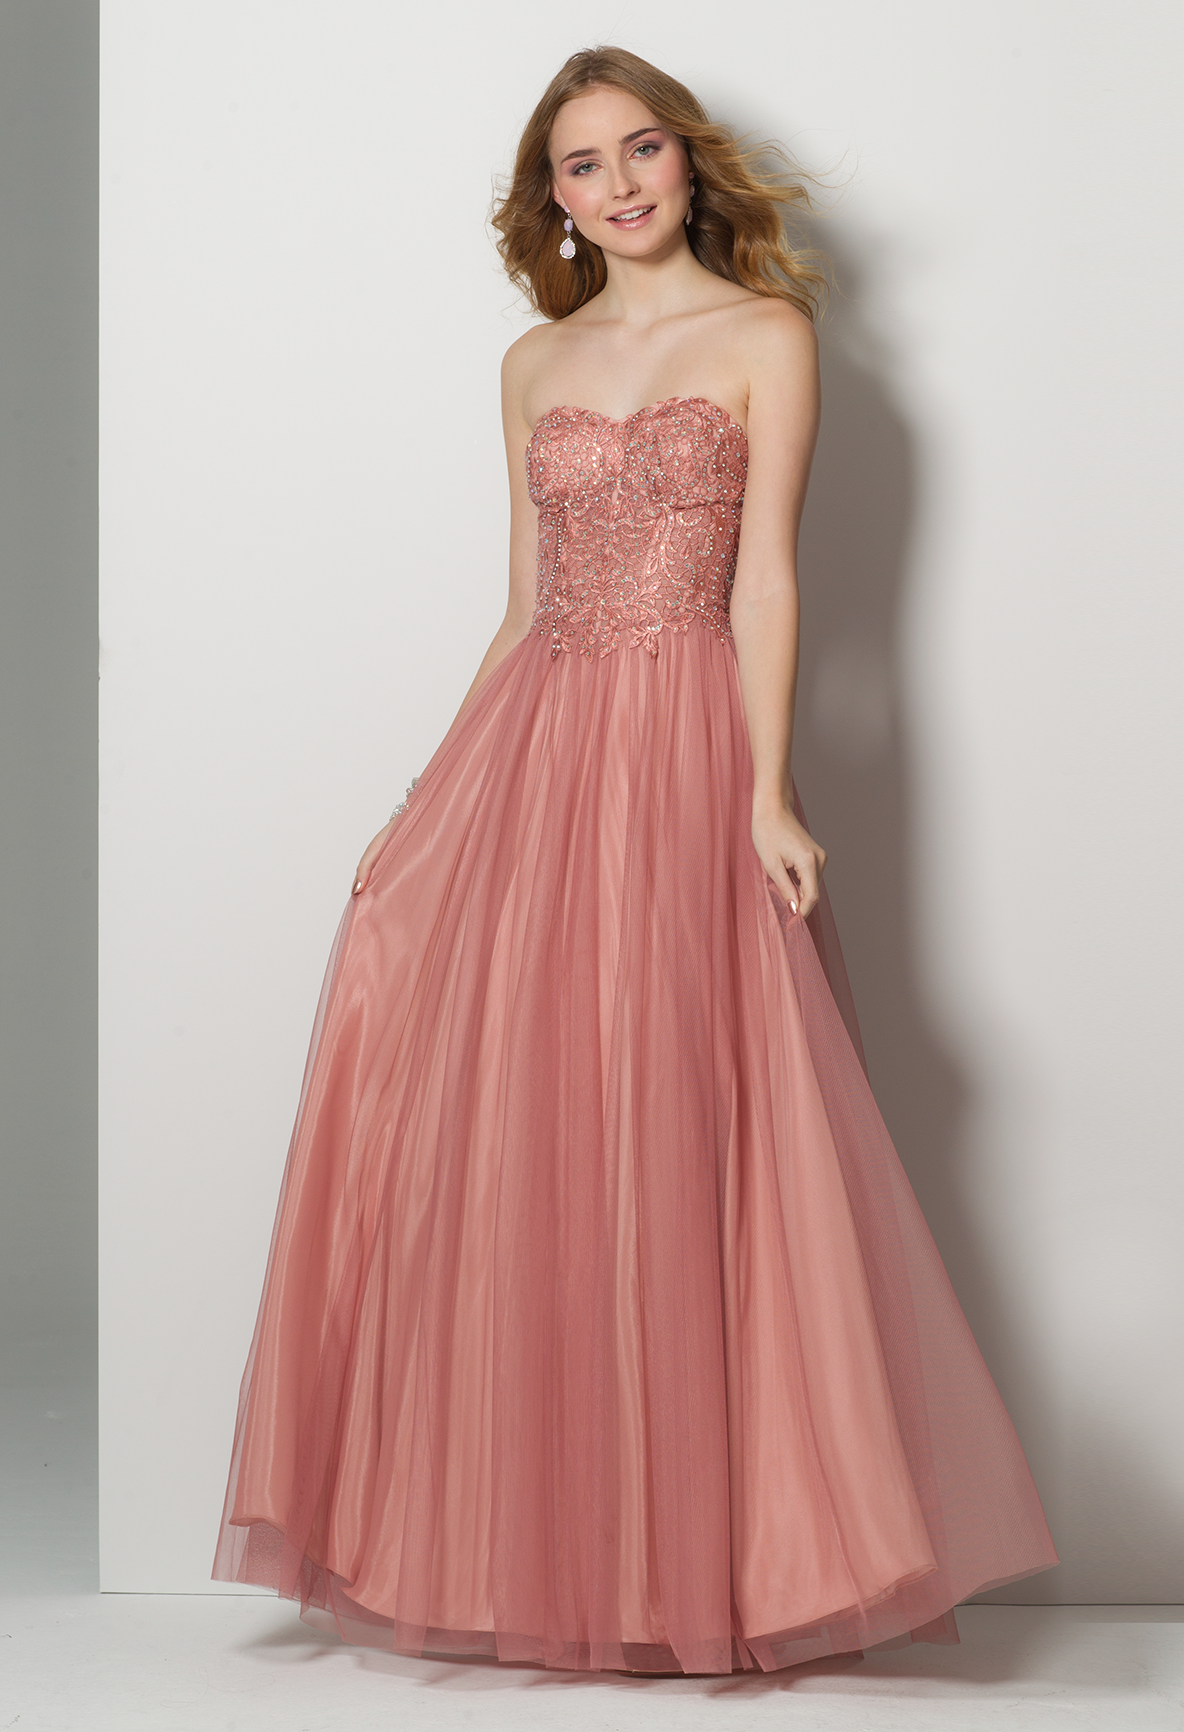 Embroidered illusion corset tulle ballgown dress